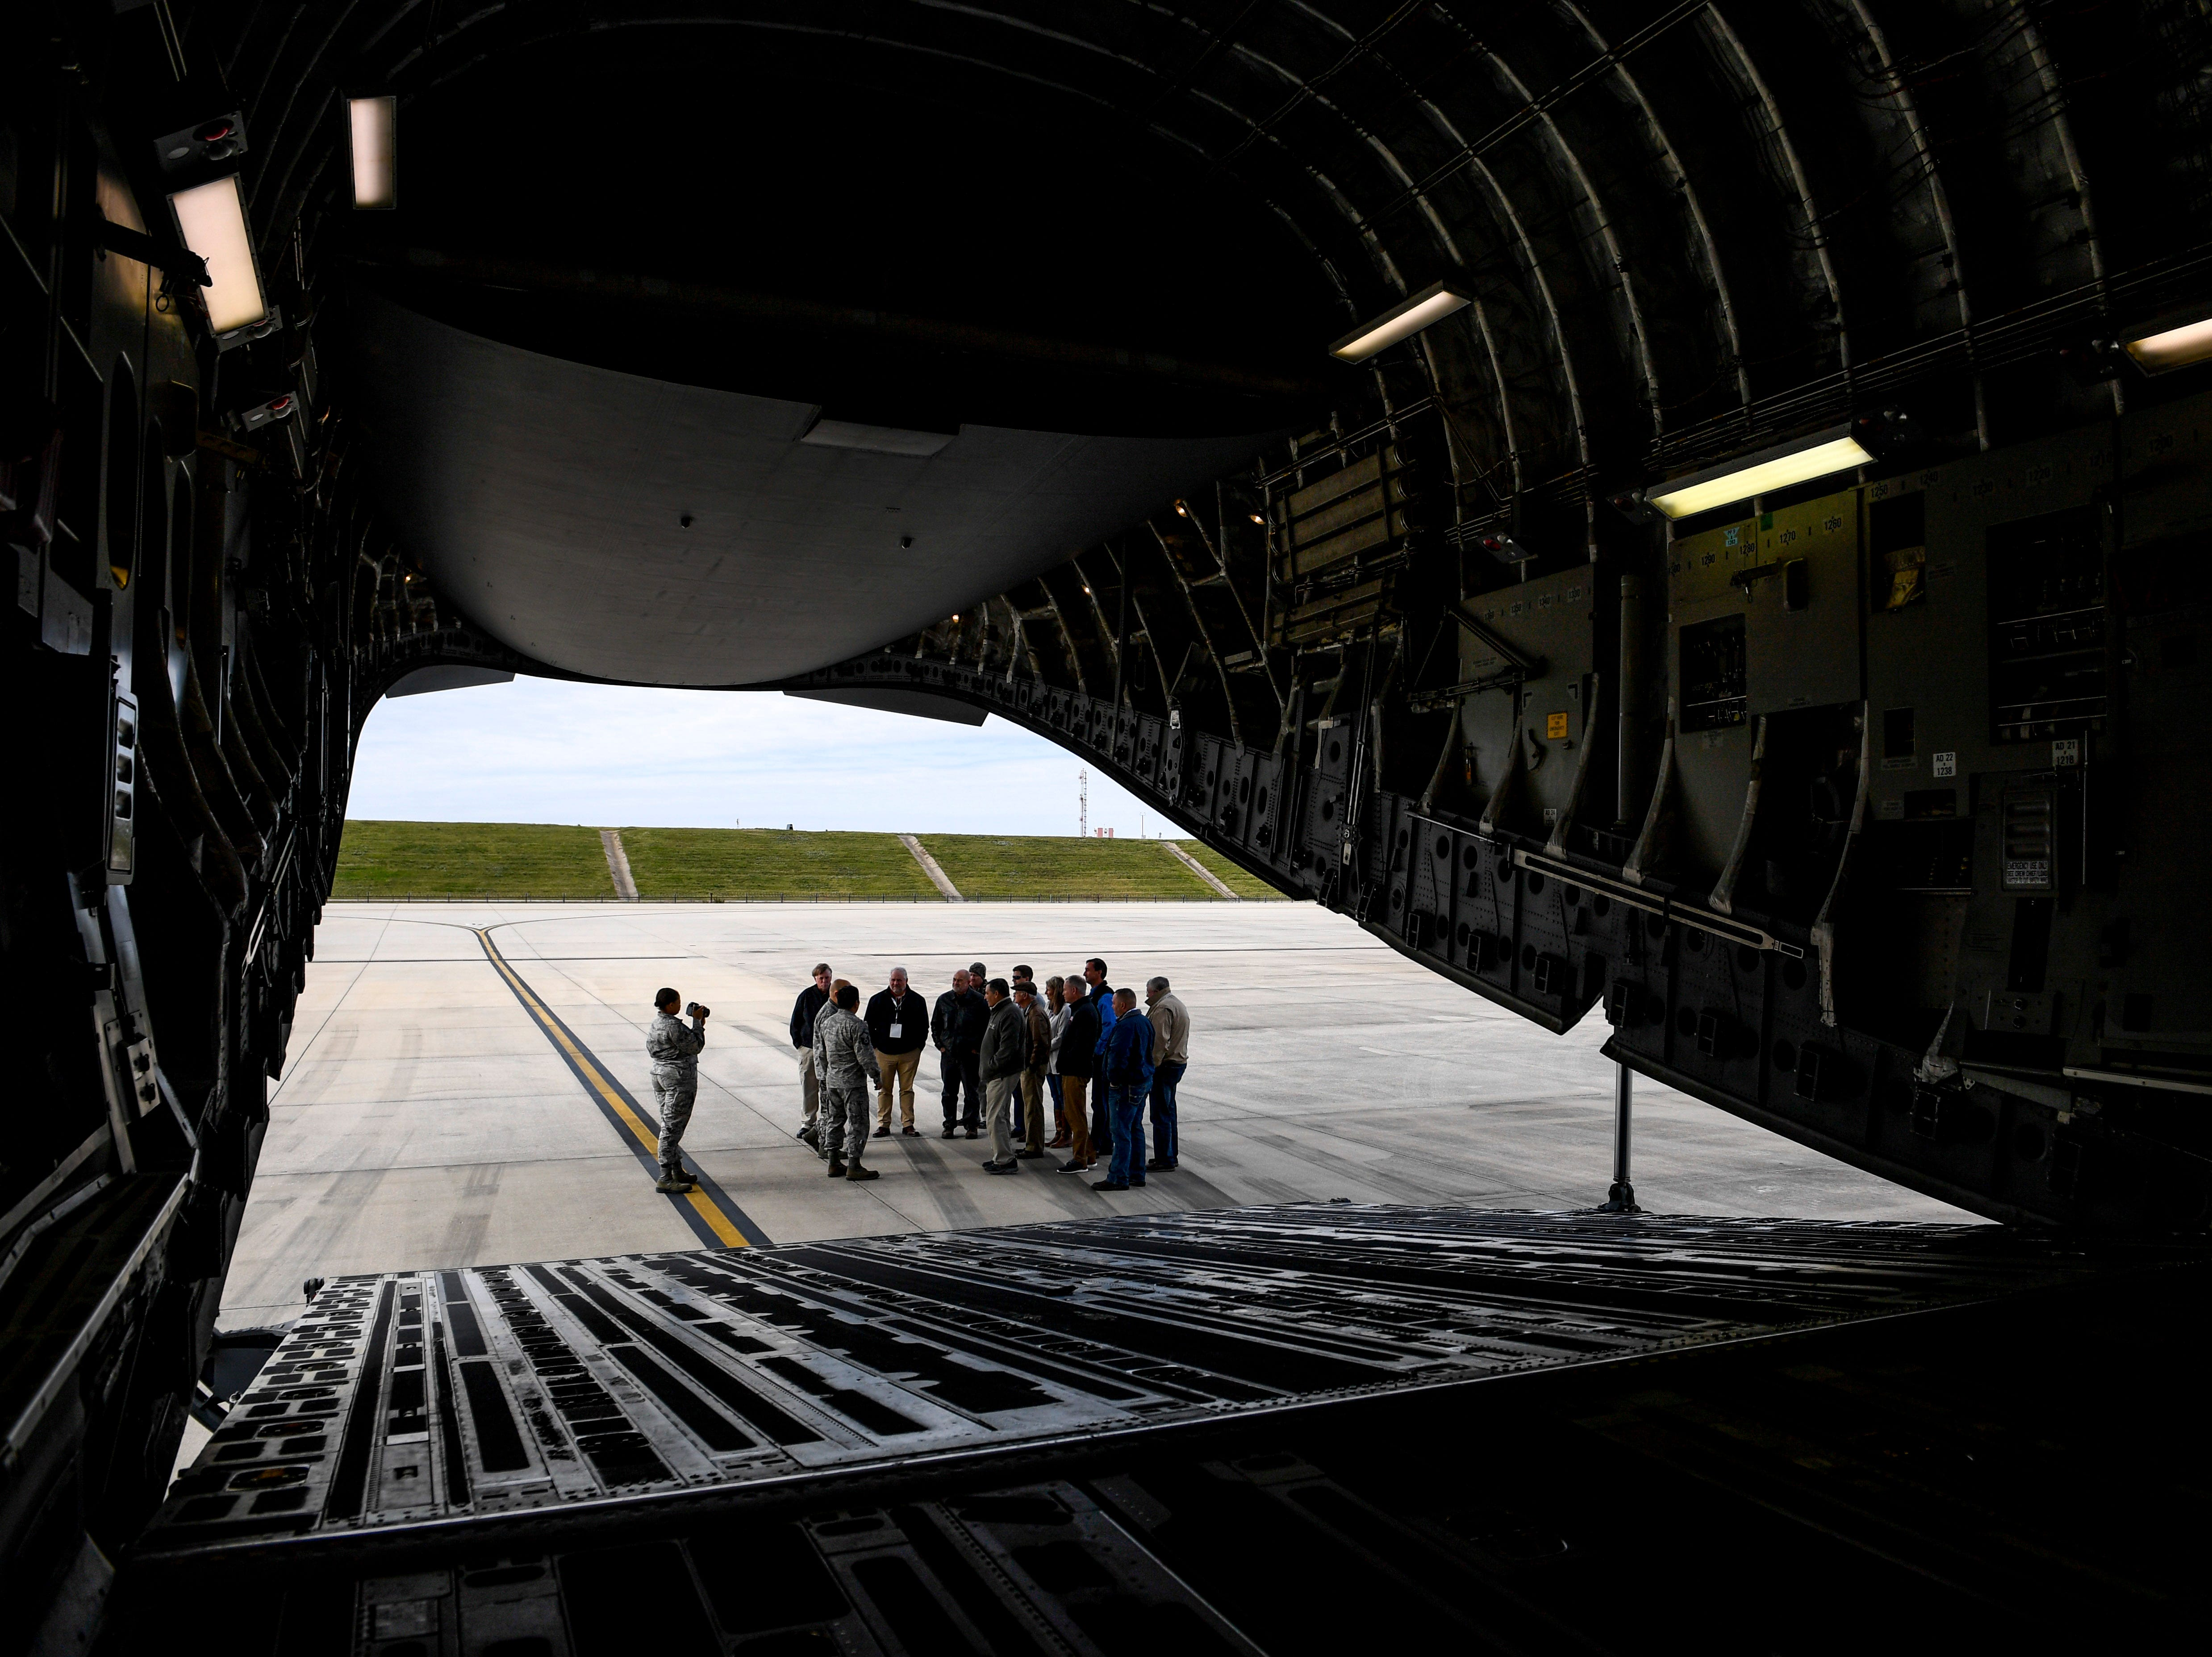 Attendees stand and chat with a National Guardsmen outside the rear of a C-17 during the annual Bosslift event put on by Employer Support of the Guard and Reserve (ESGR) and the Tennessee National Guard at 164th Airlift Wing in Memphis, Tenn., on Thursday, Nov. 8, 2018.